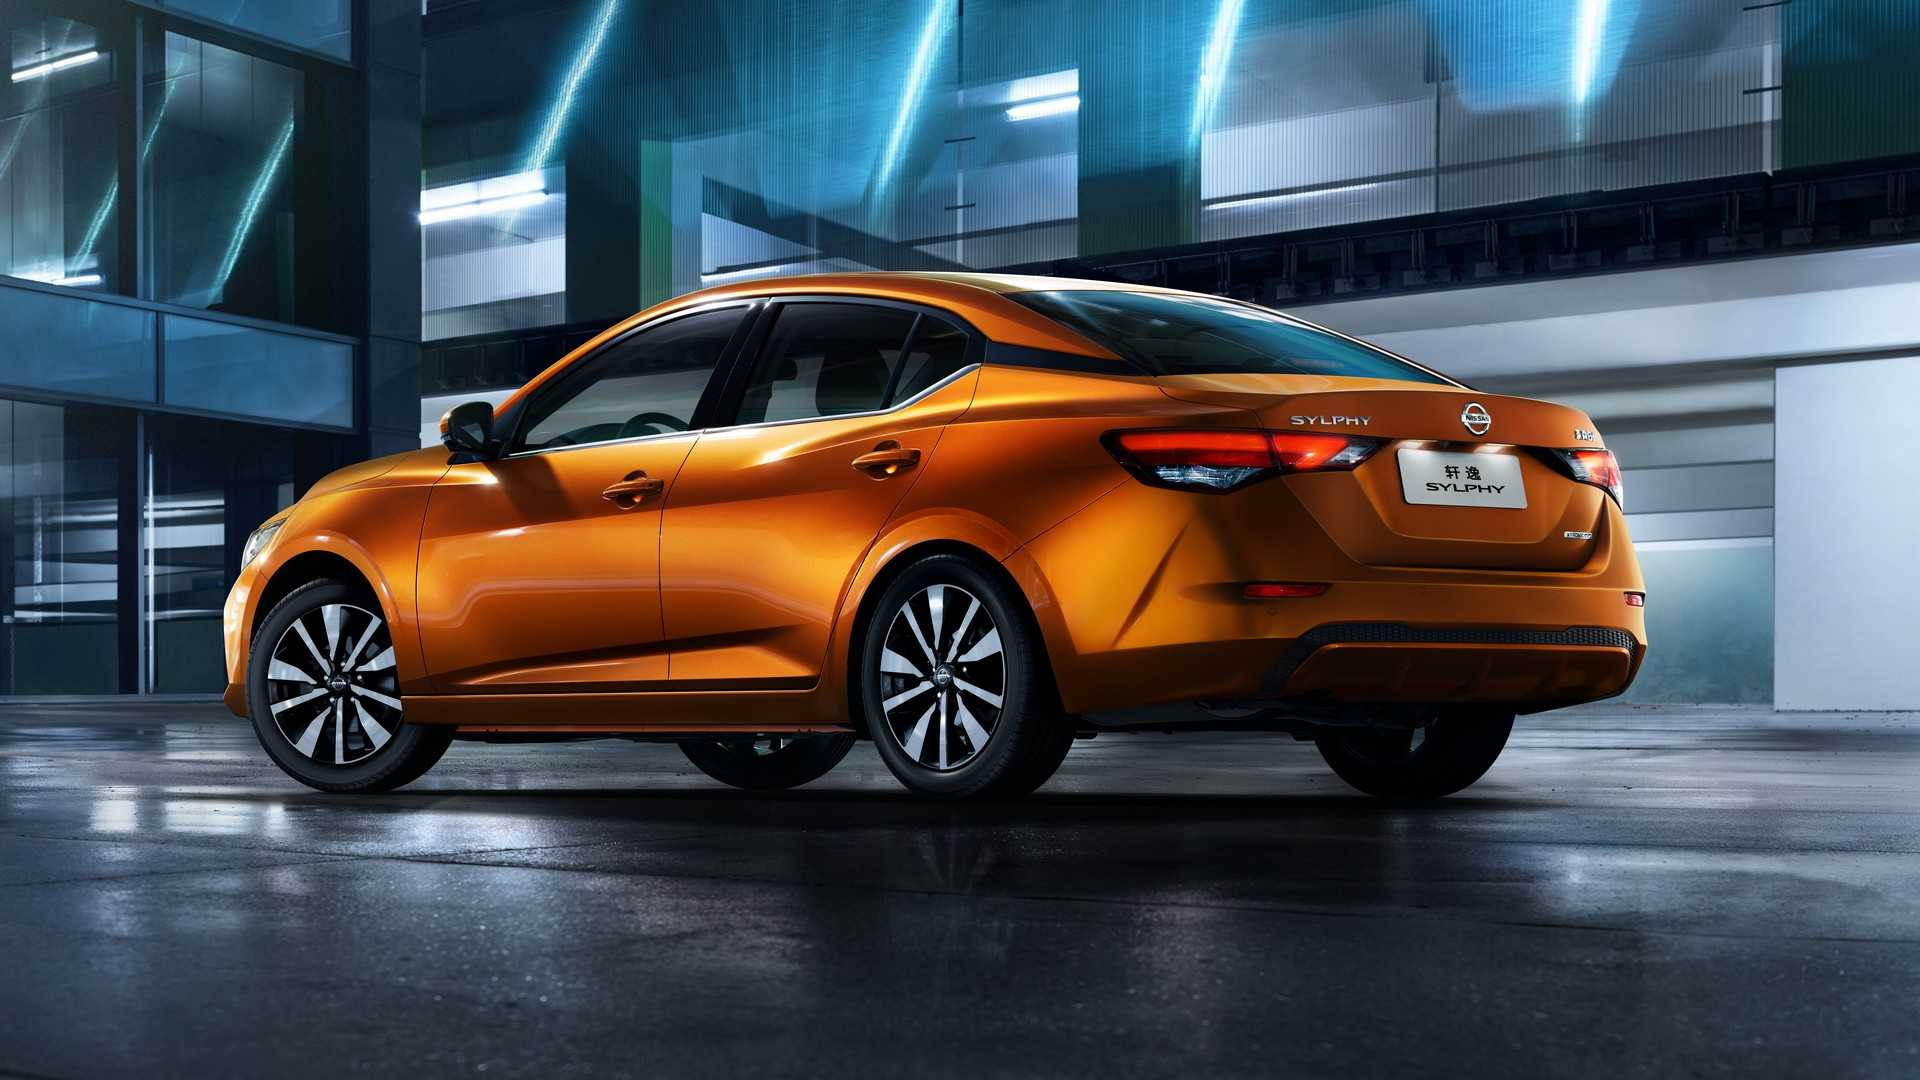 90 All New When Does The 2020 Nissan Maxima Come Out Rumors